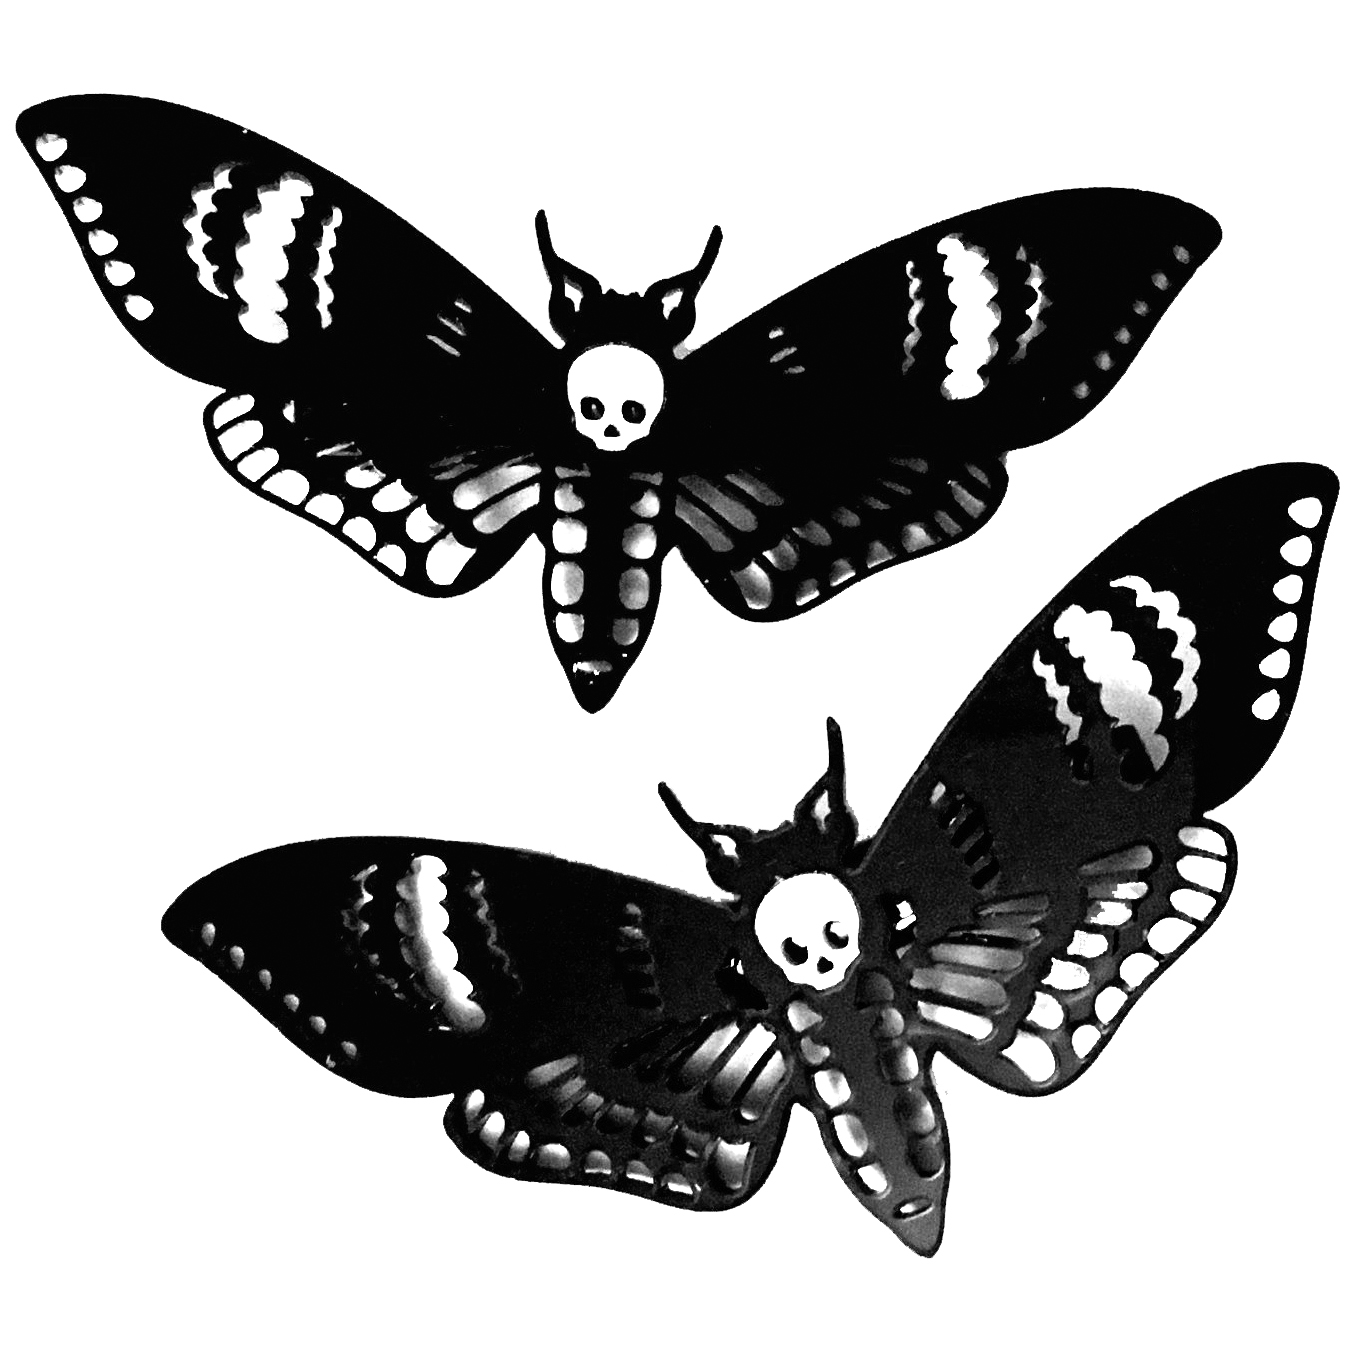 Drawn moth Pair Deaths Clips Curiology Curiology